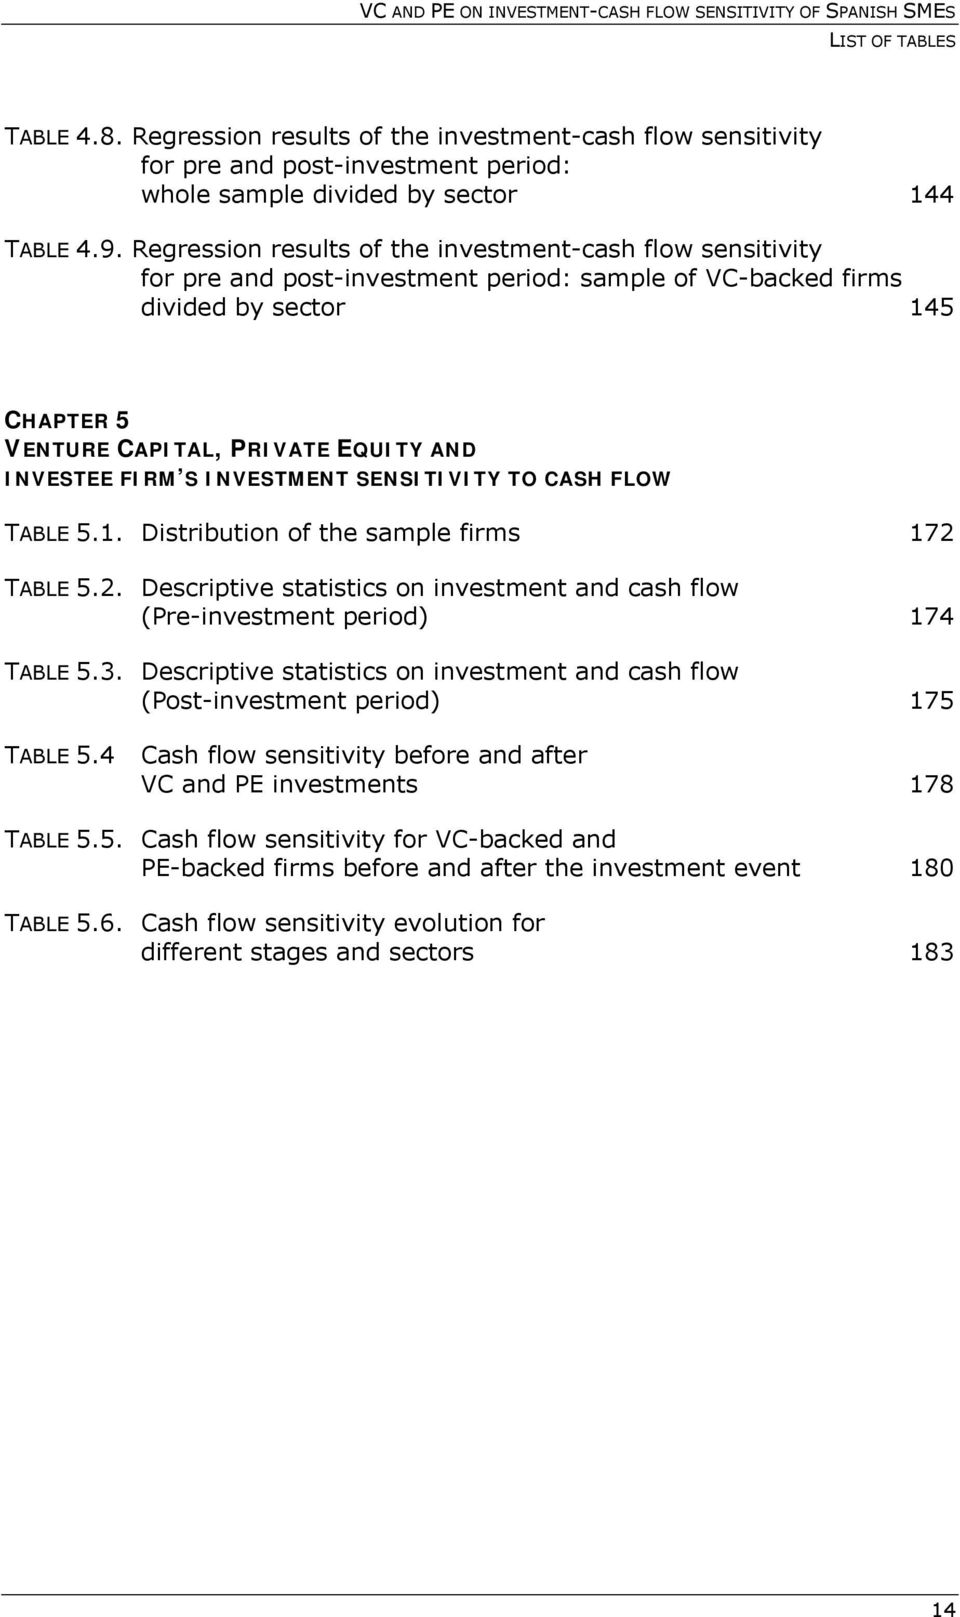 FIRM S INVESTMENT SENSITIVITY TO CASH FLOW TABLE 5.1. Distribution of the sample firms 172 TABLE 5.2. Descriptive statistics on investment and cash flow (Pre-investment period) 174 TABLE 5.3.